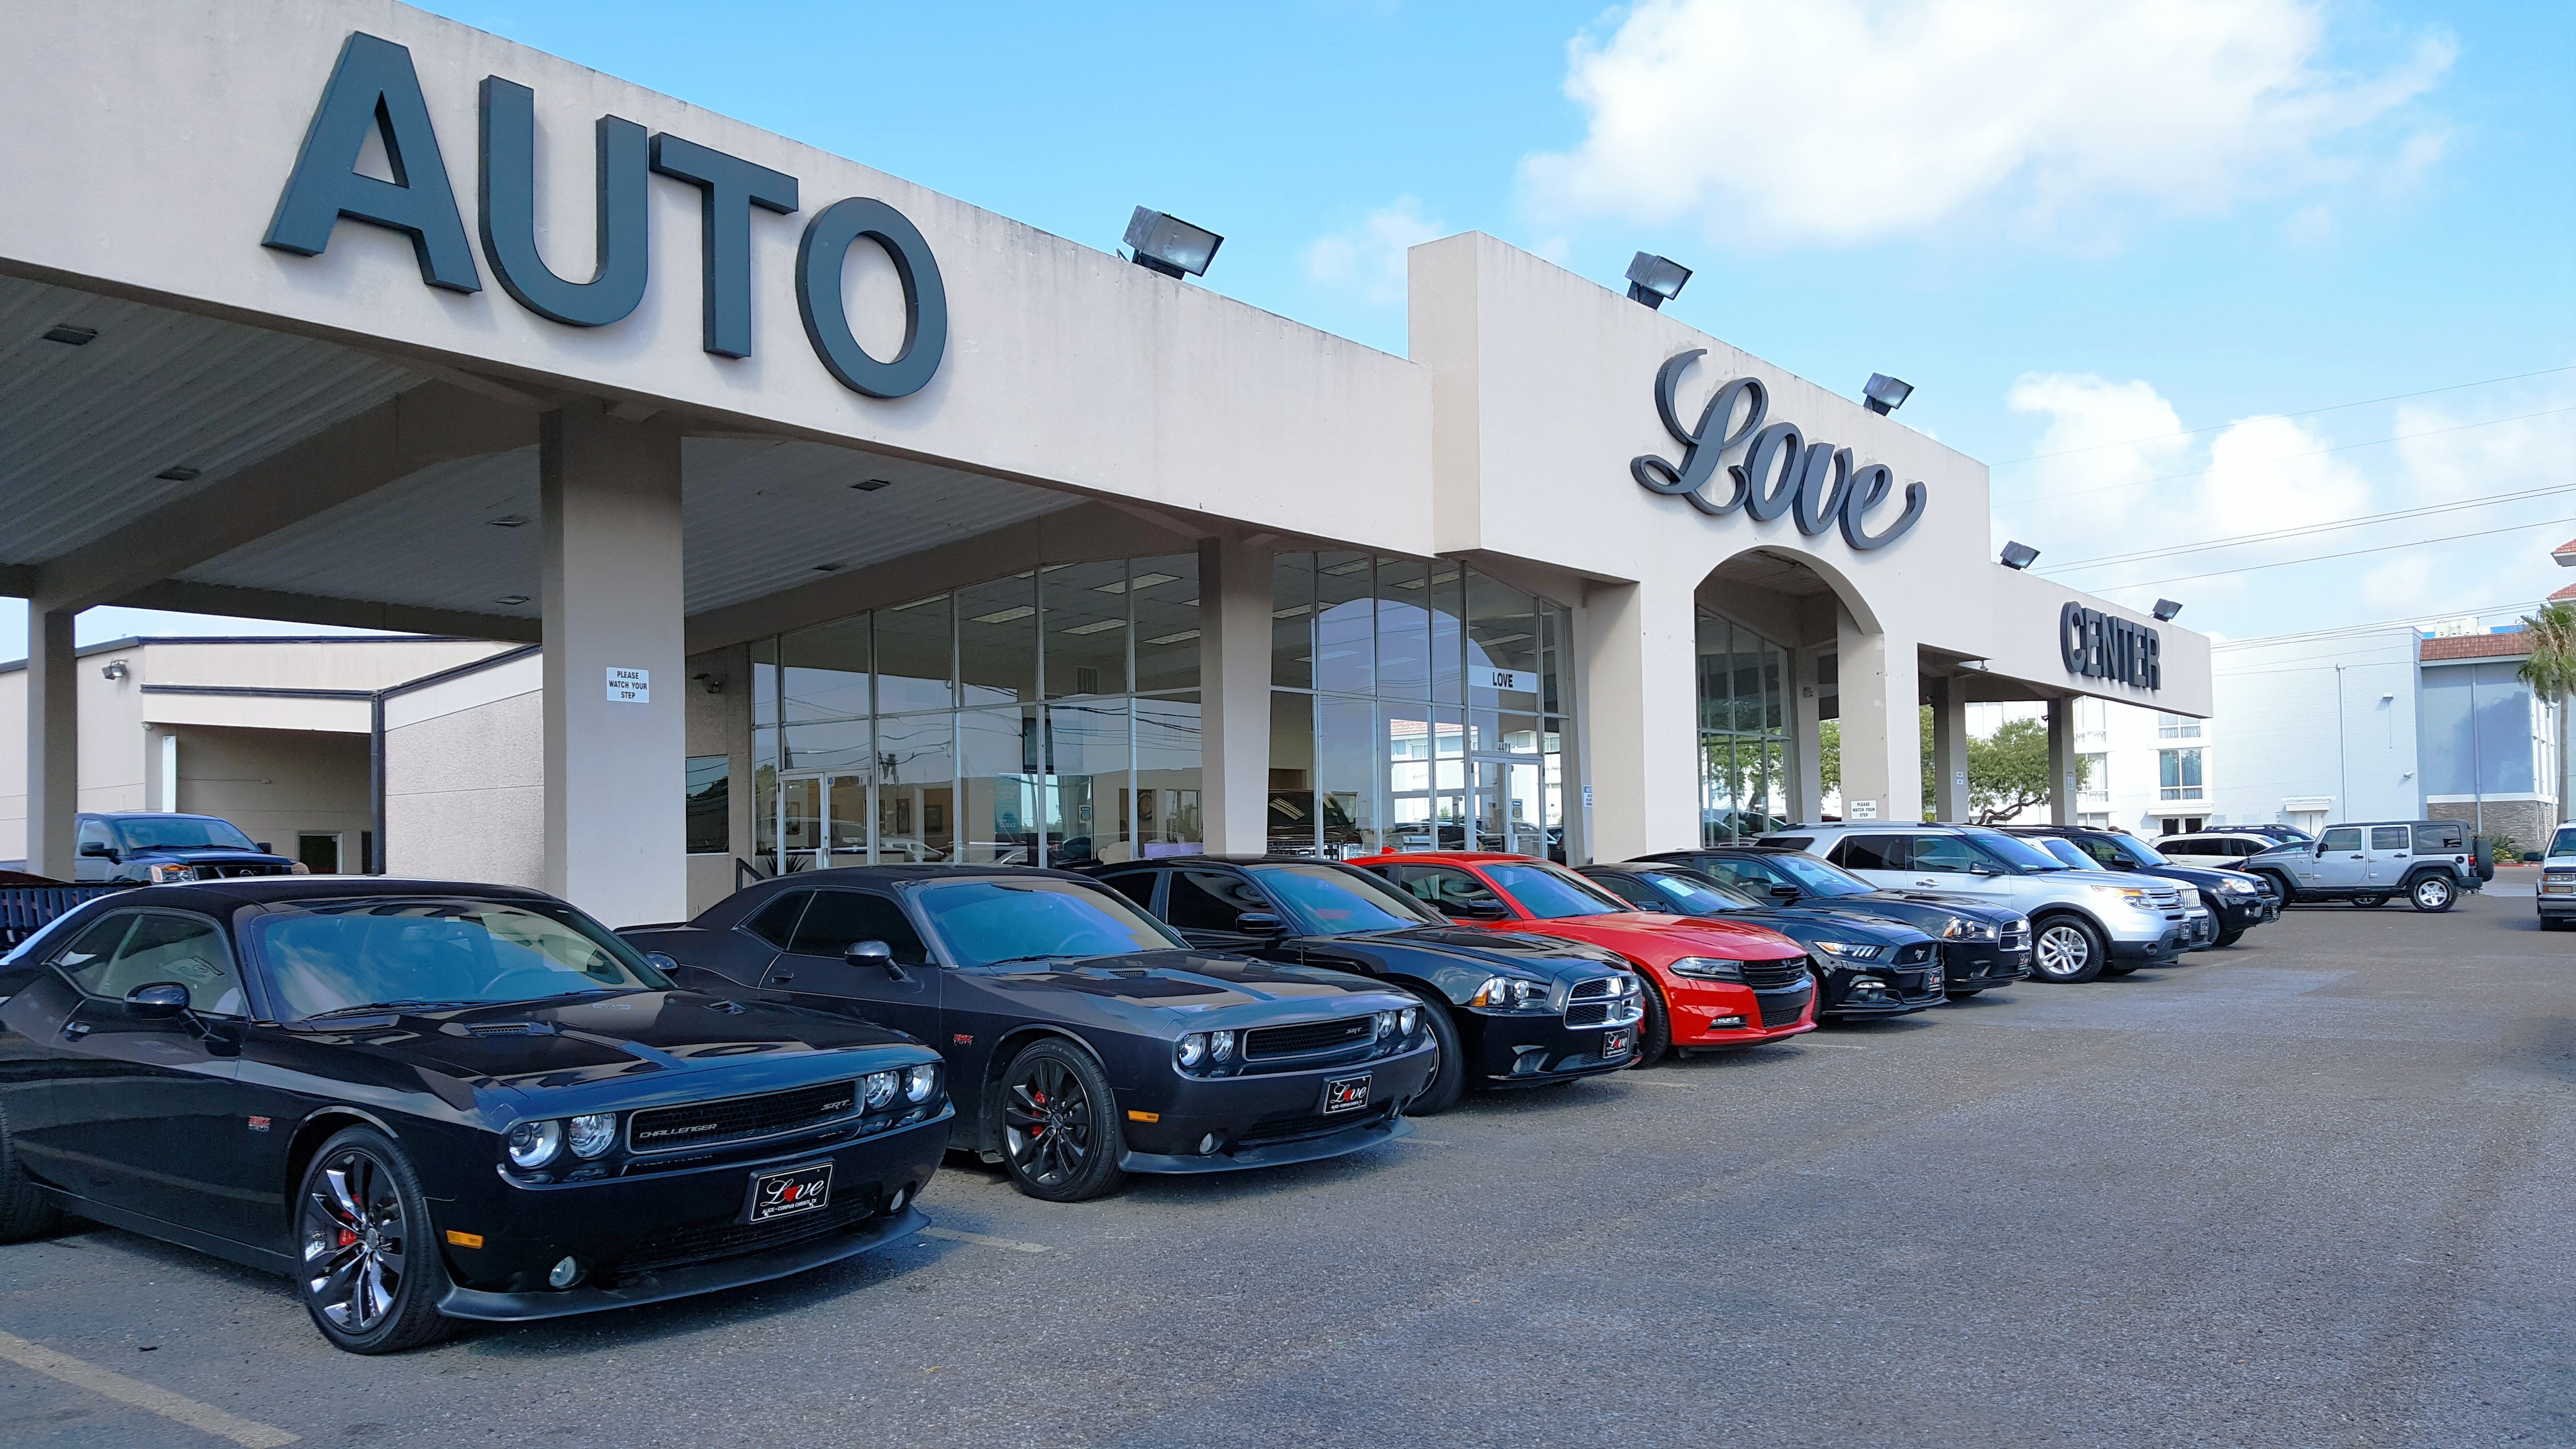 Used Dealerships Near Me >> Lovely Pre Owned Dealerships Near Me | used cars